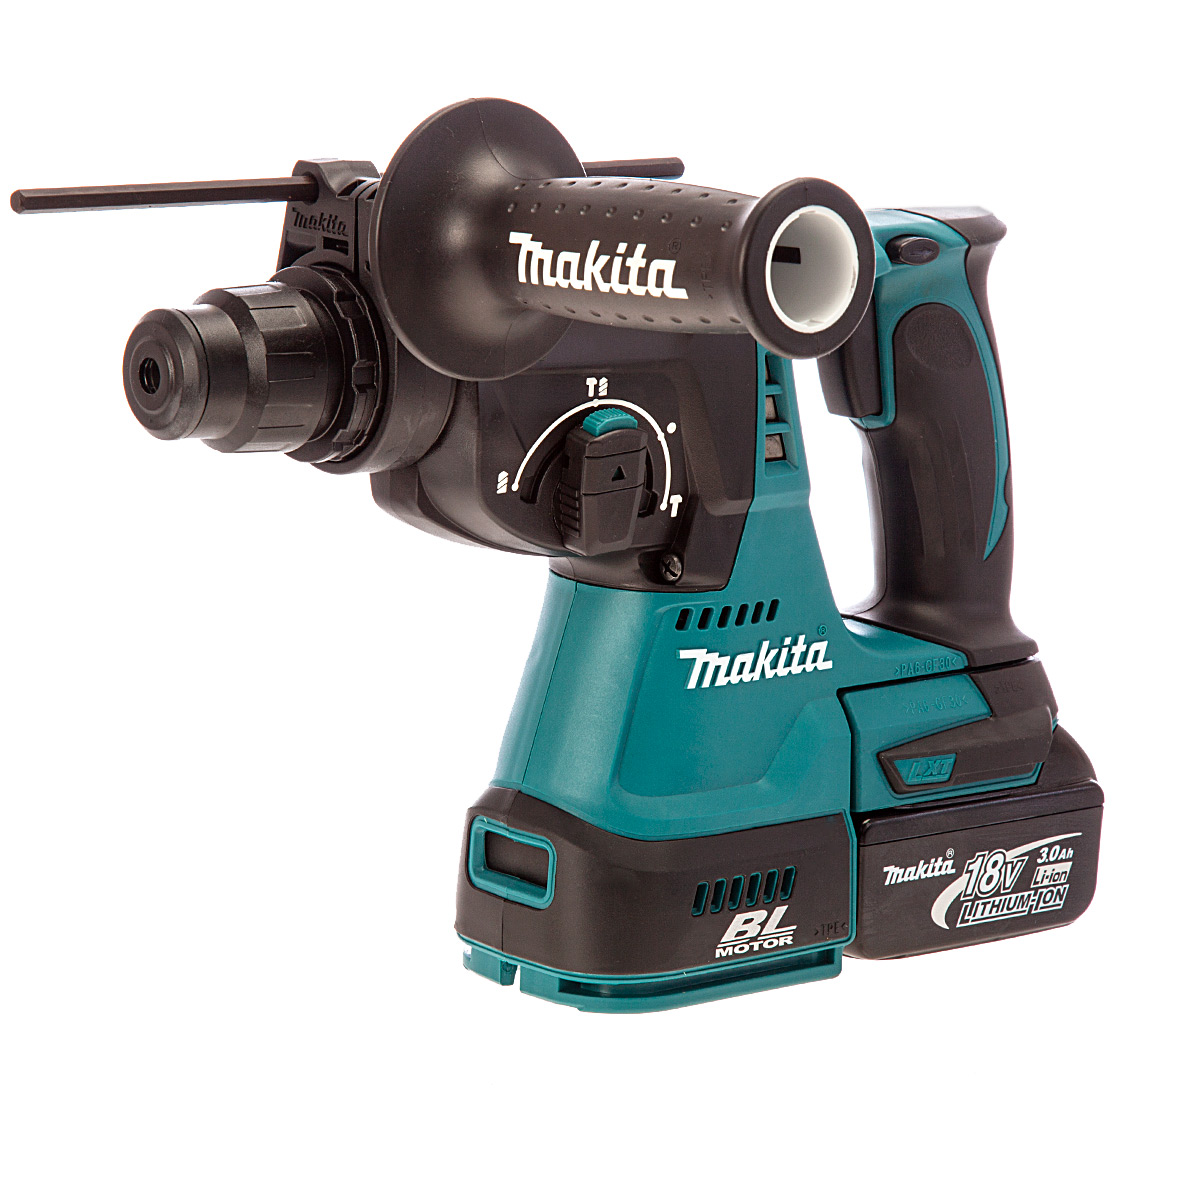 MAKITA DHR242RF 18V BRUSHLESS SDS DRILL 1 x 3.0ah Li-ion BATTERY